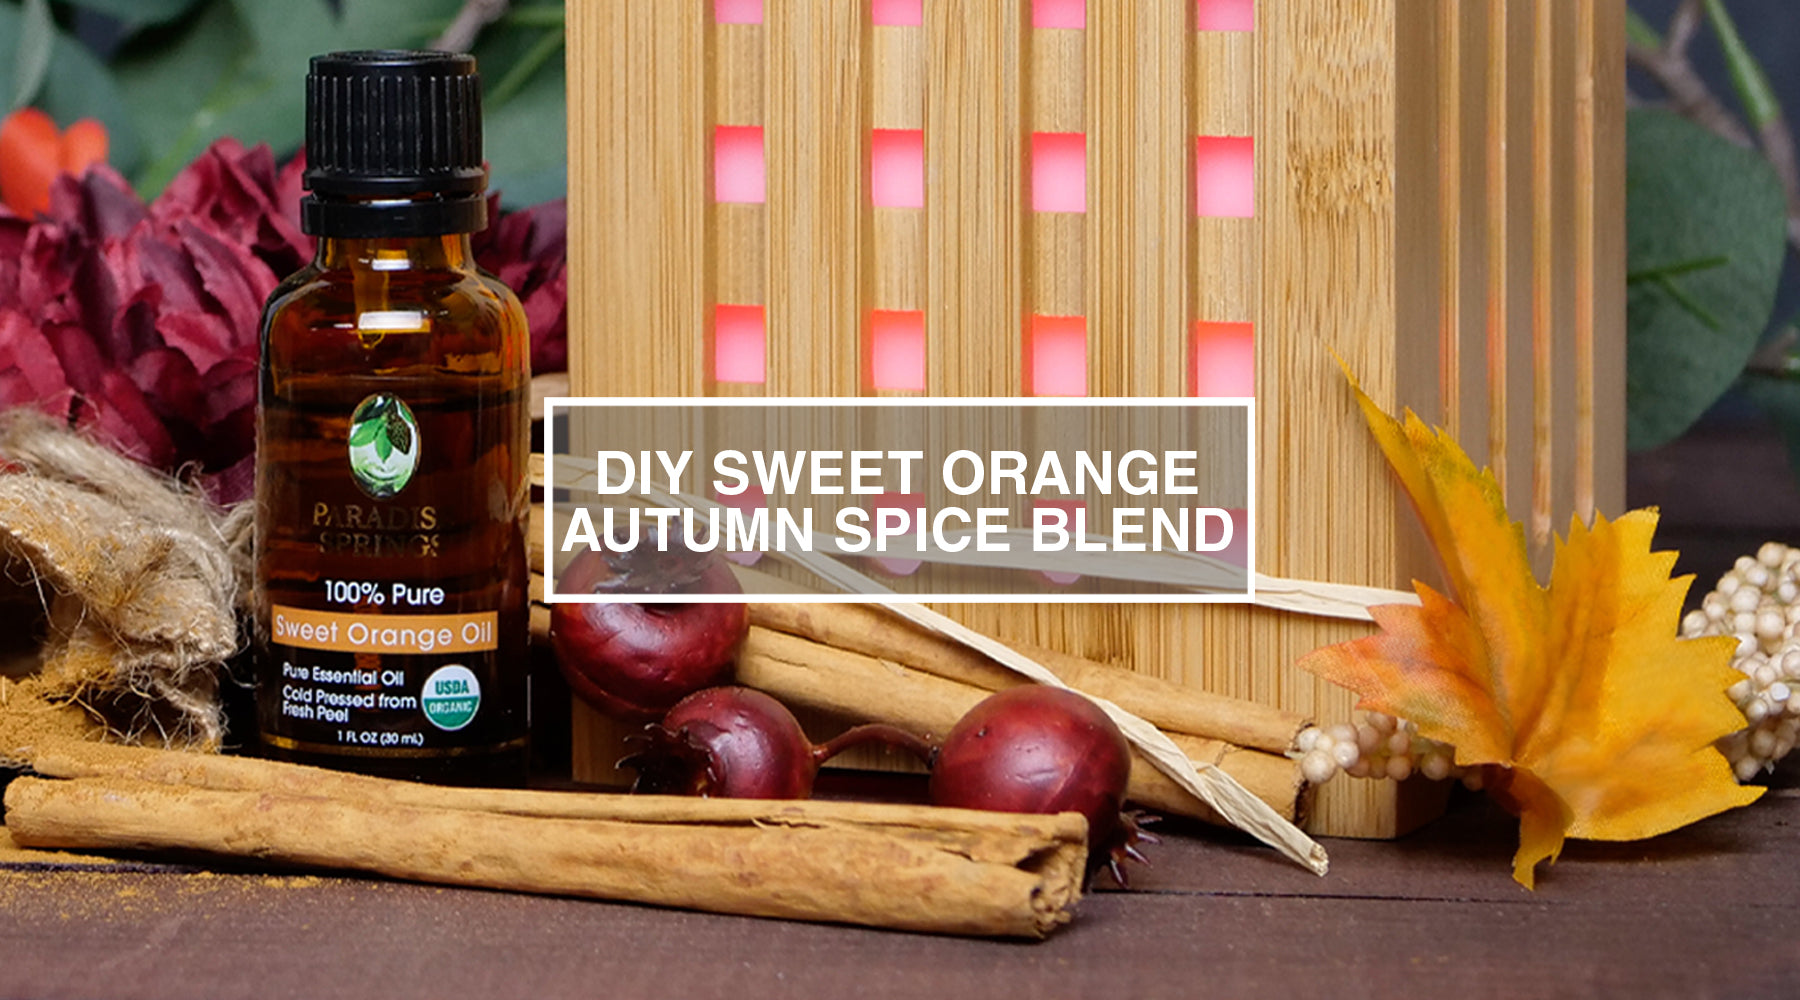 DIY Sweet Orange Autumn Spice Blend